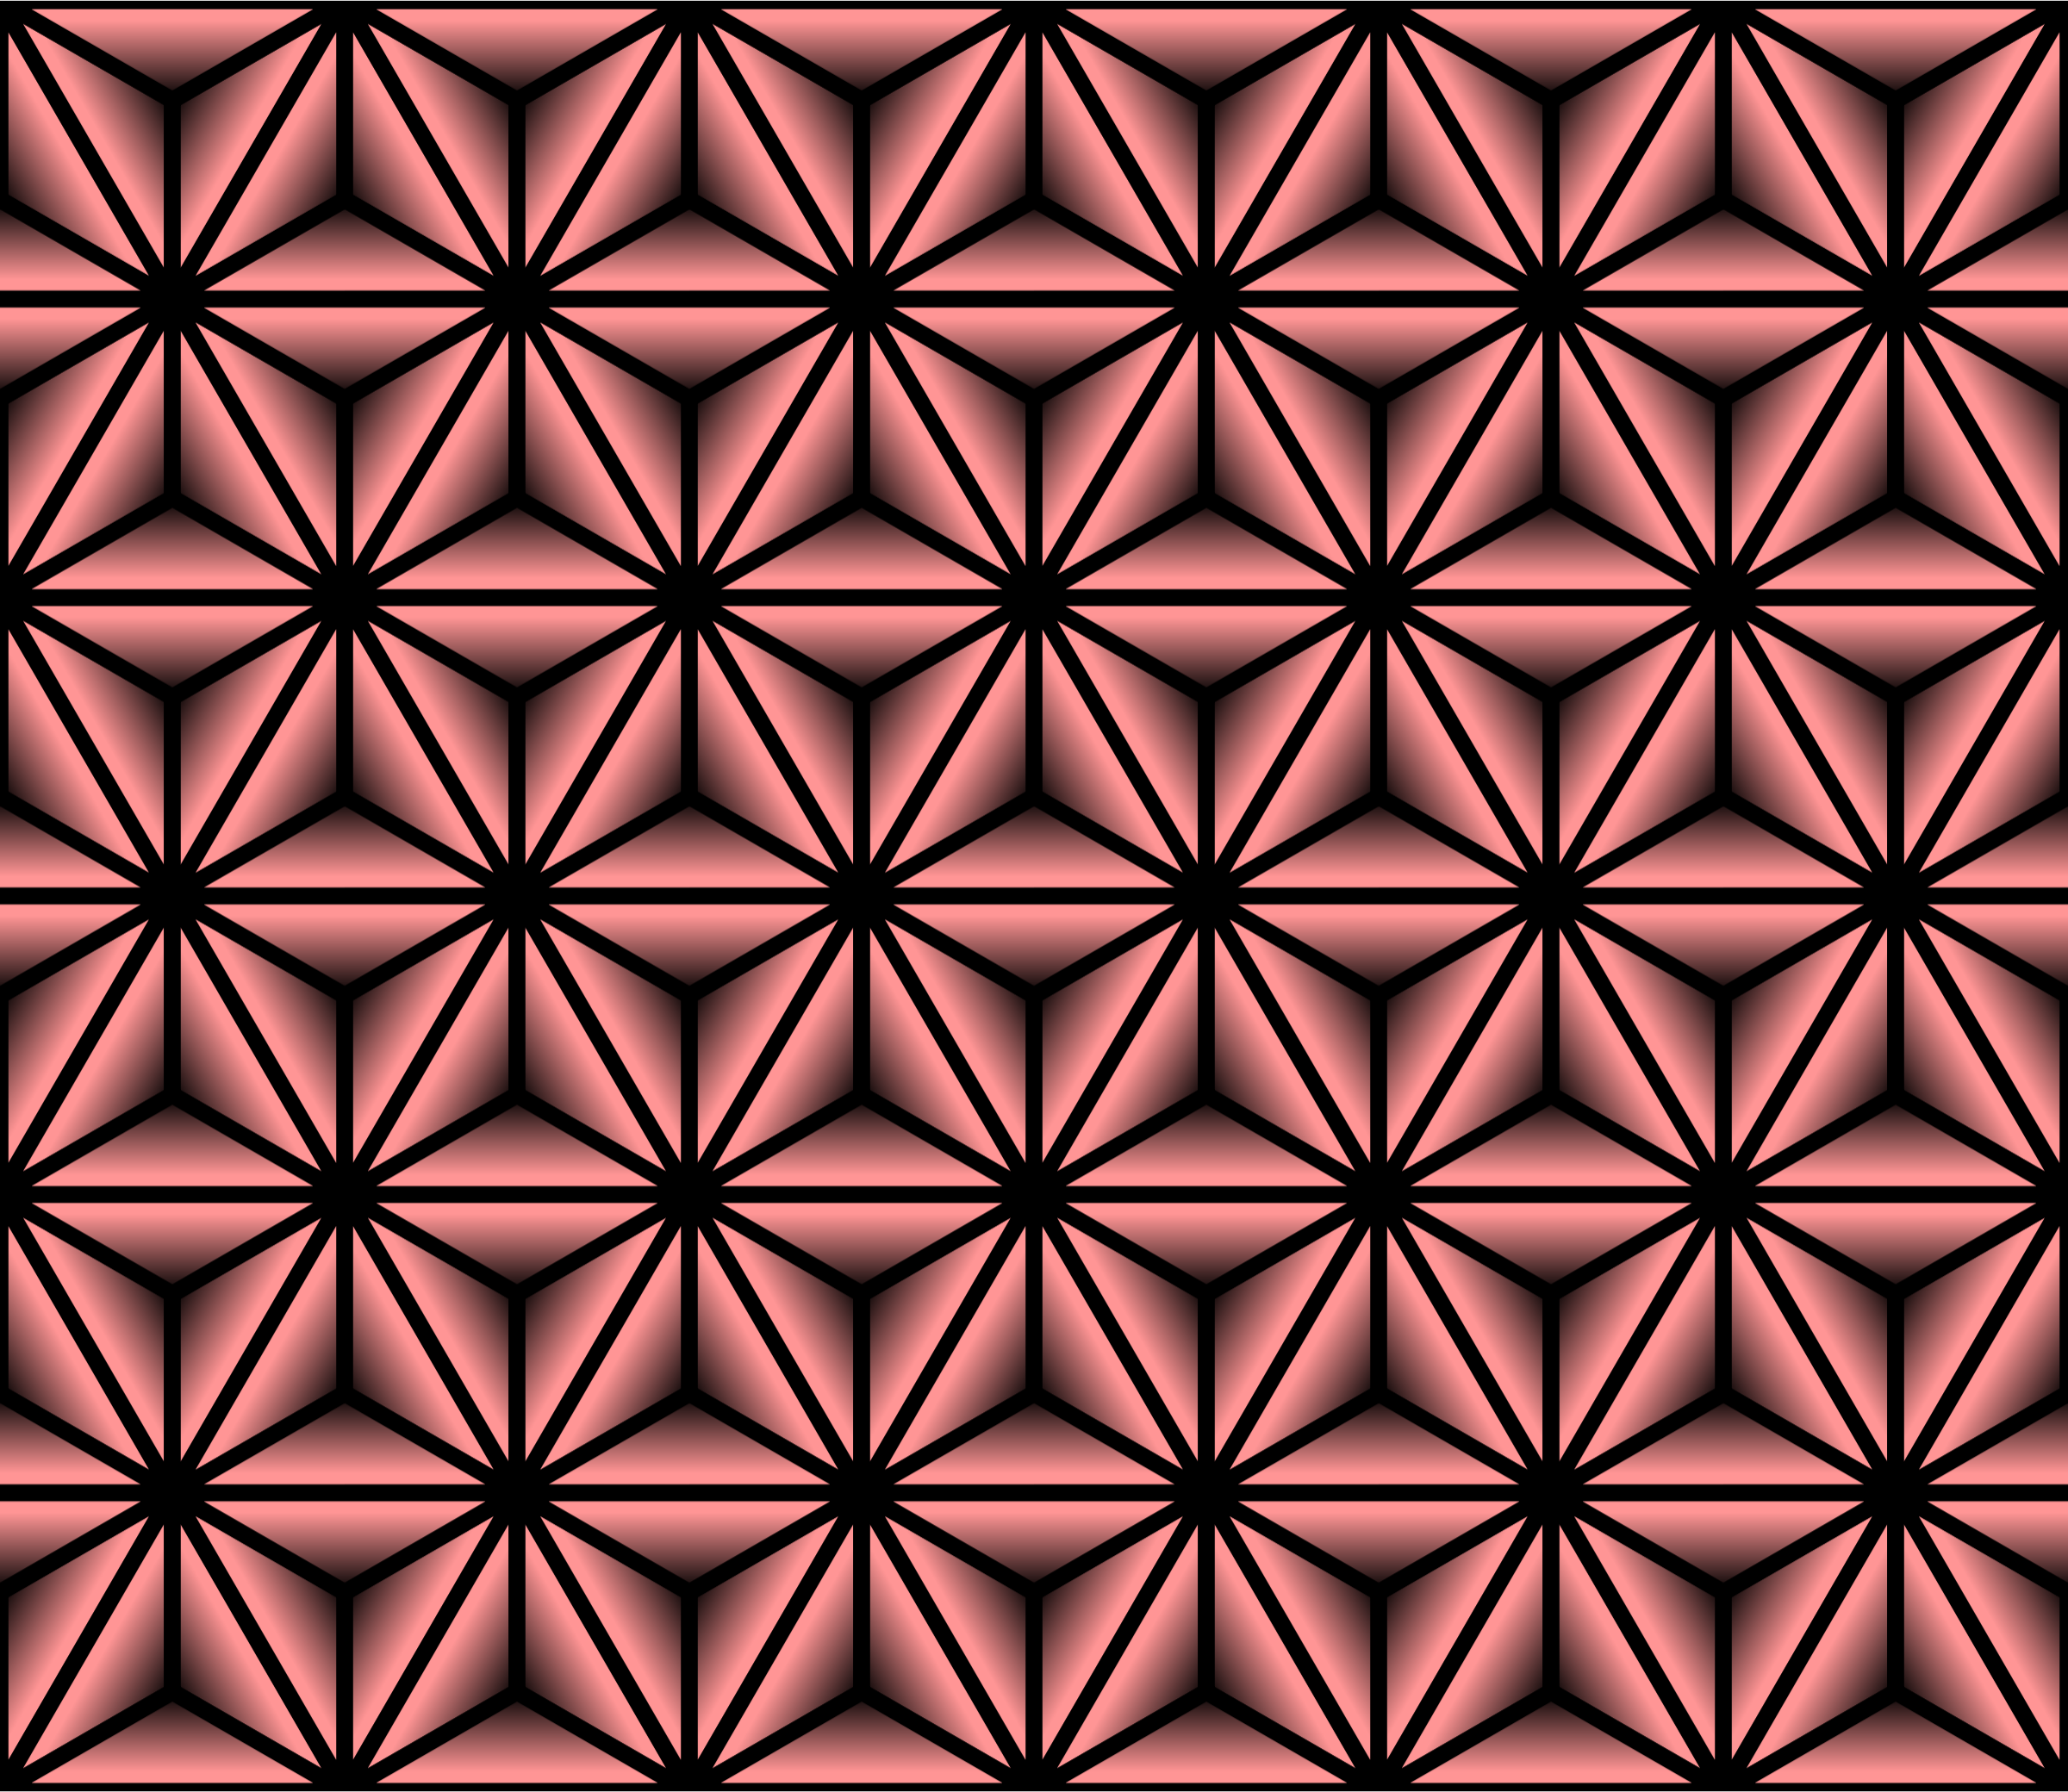 Background pattern 222 (colour 2) by Firkin